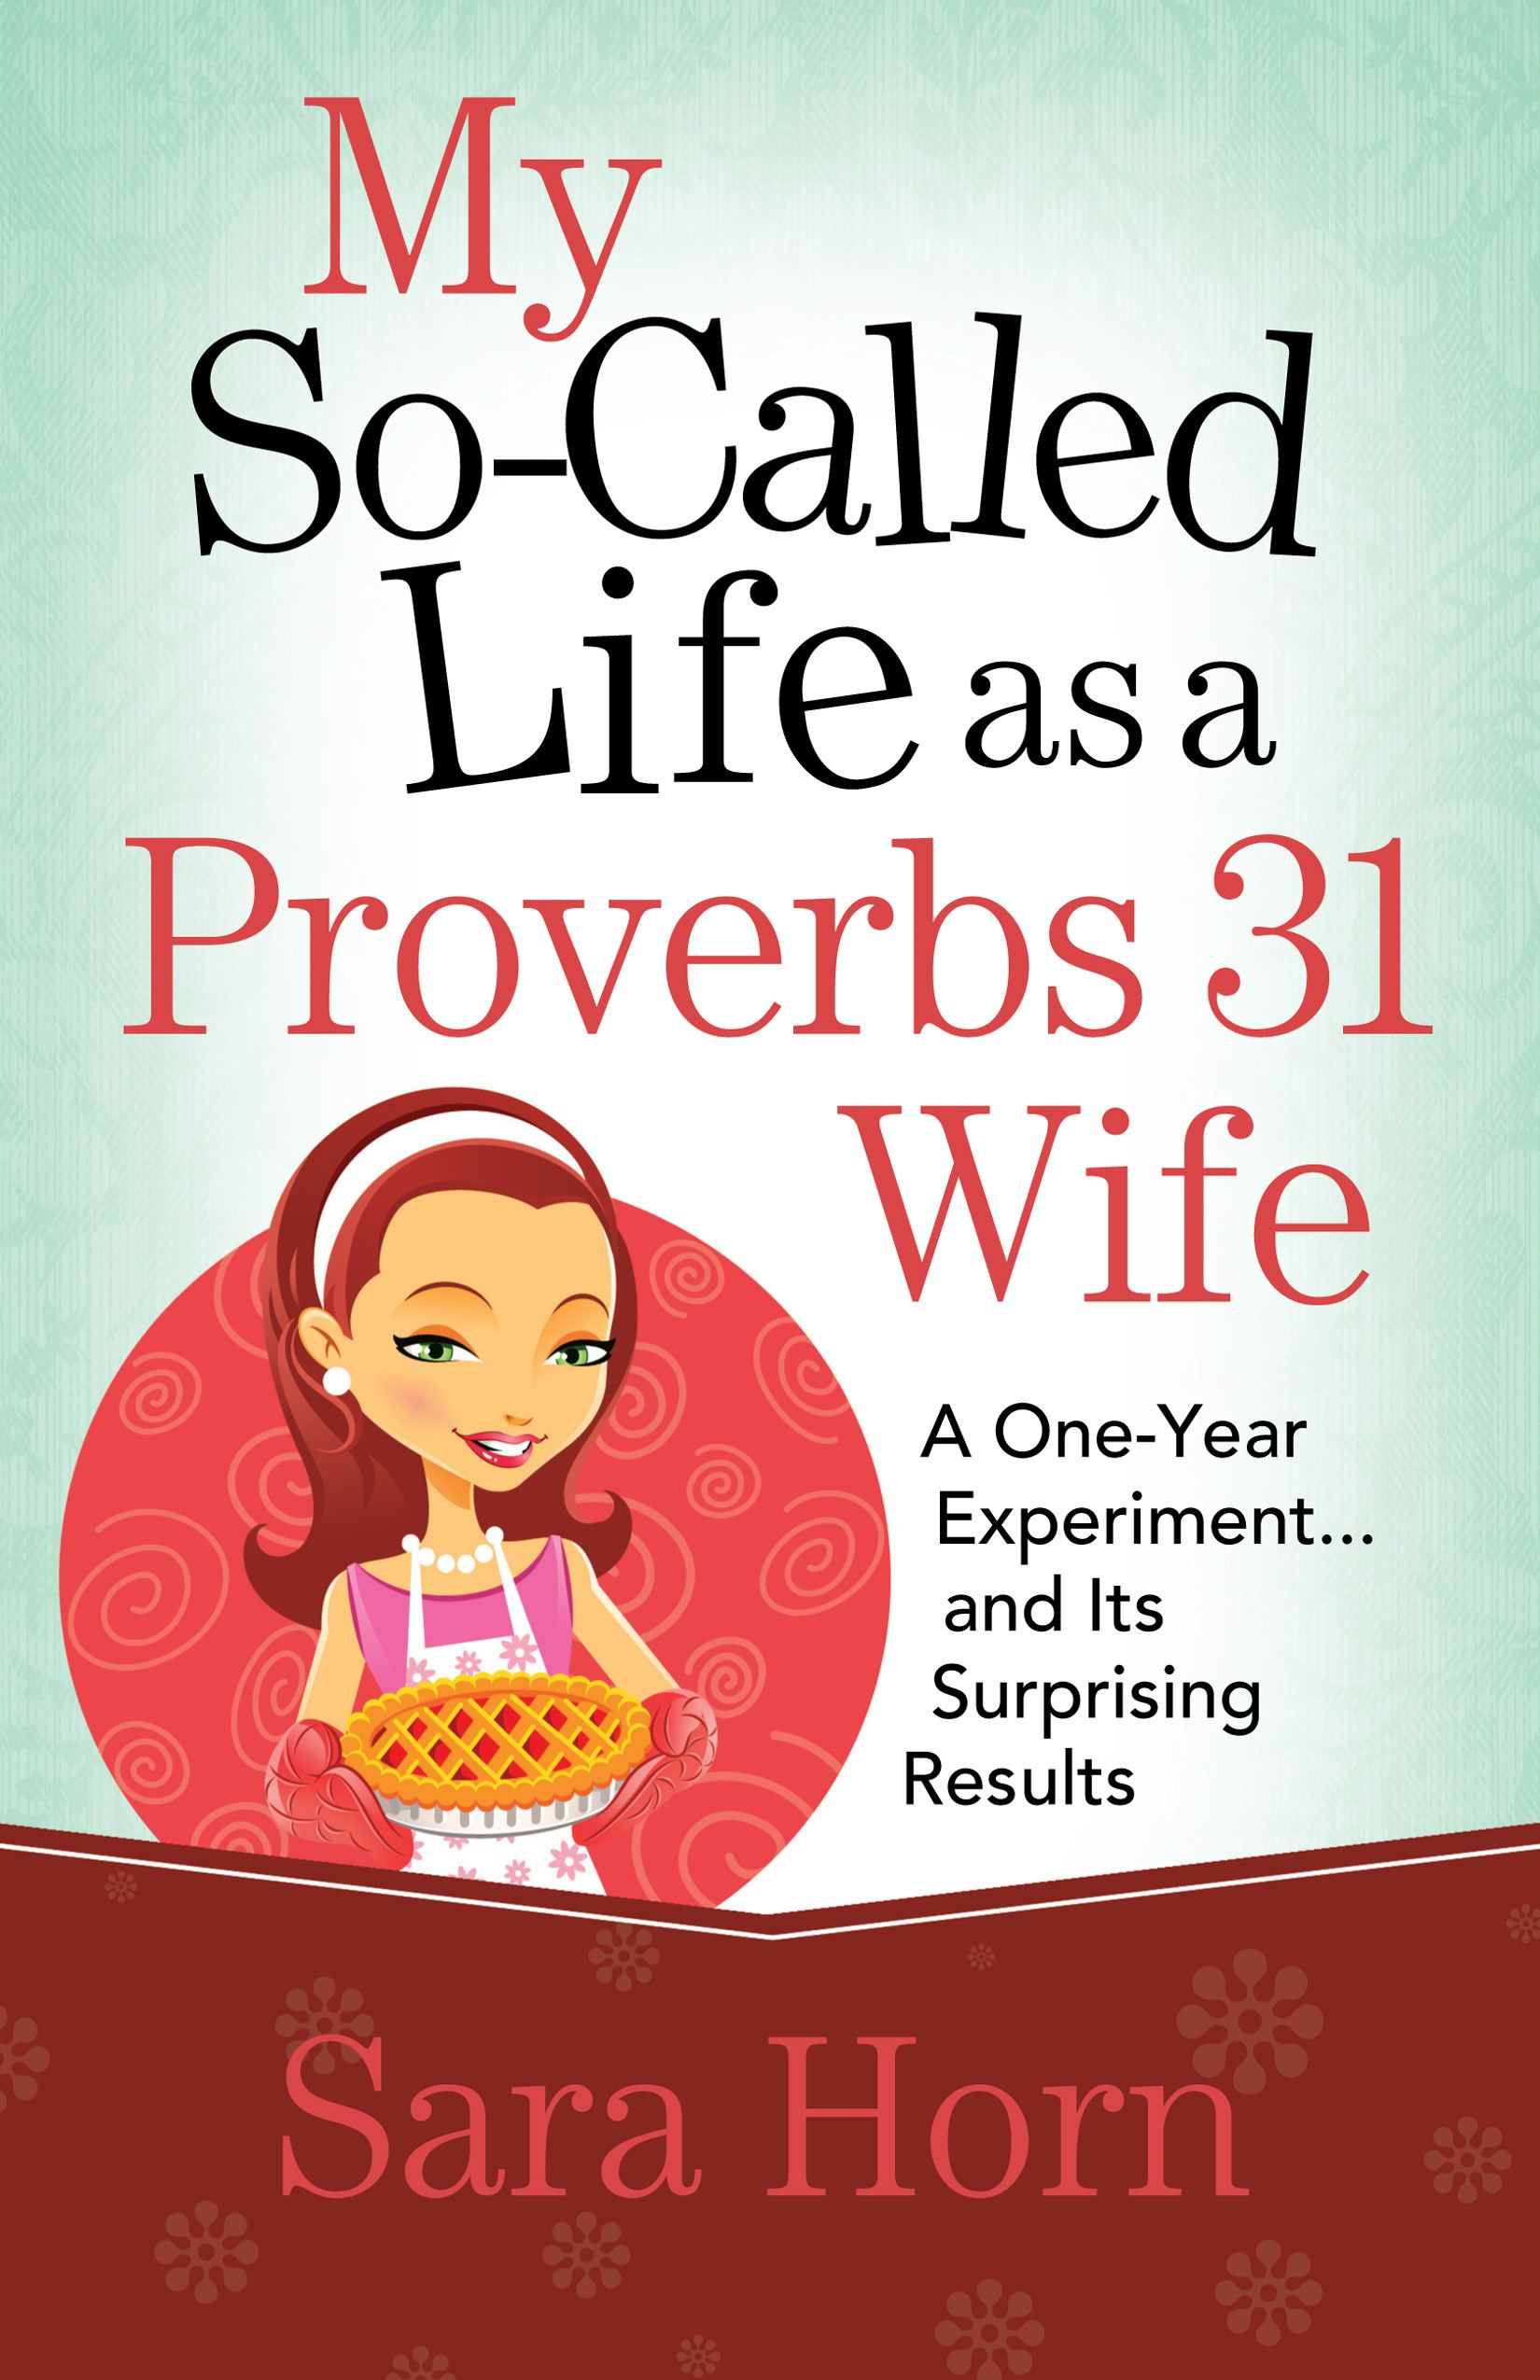 My So-Called Life as a Proverbs 31 Wife By: Sara Horn